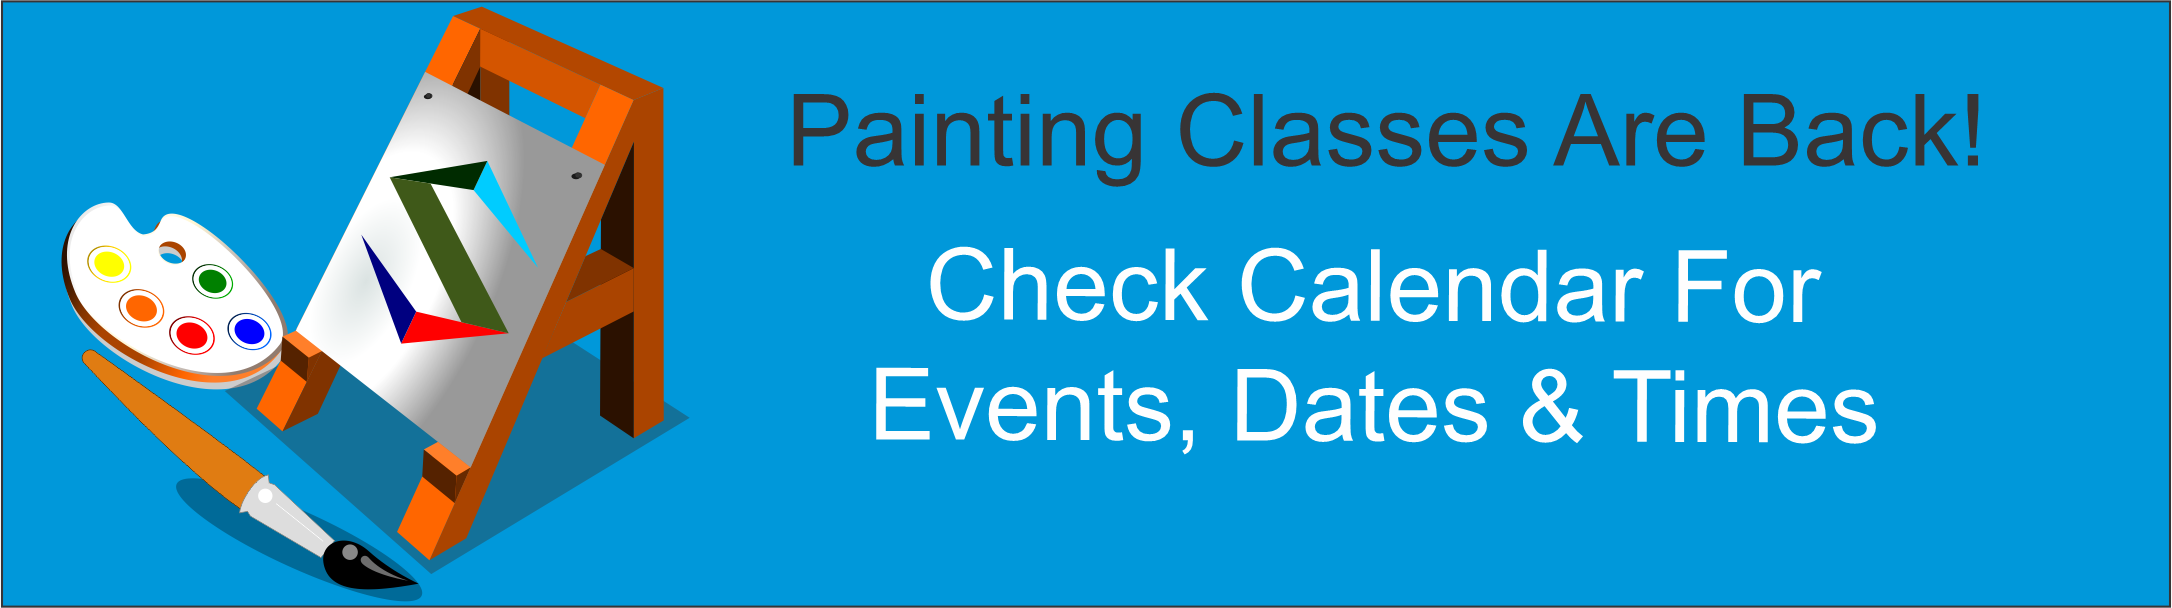 PaintingClasses